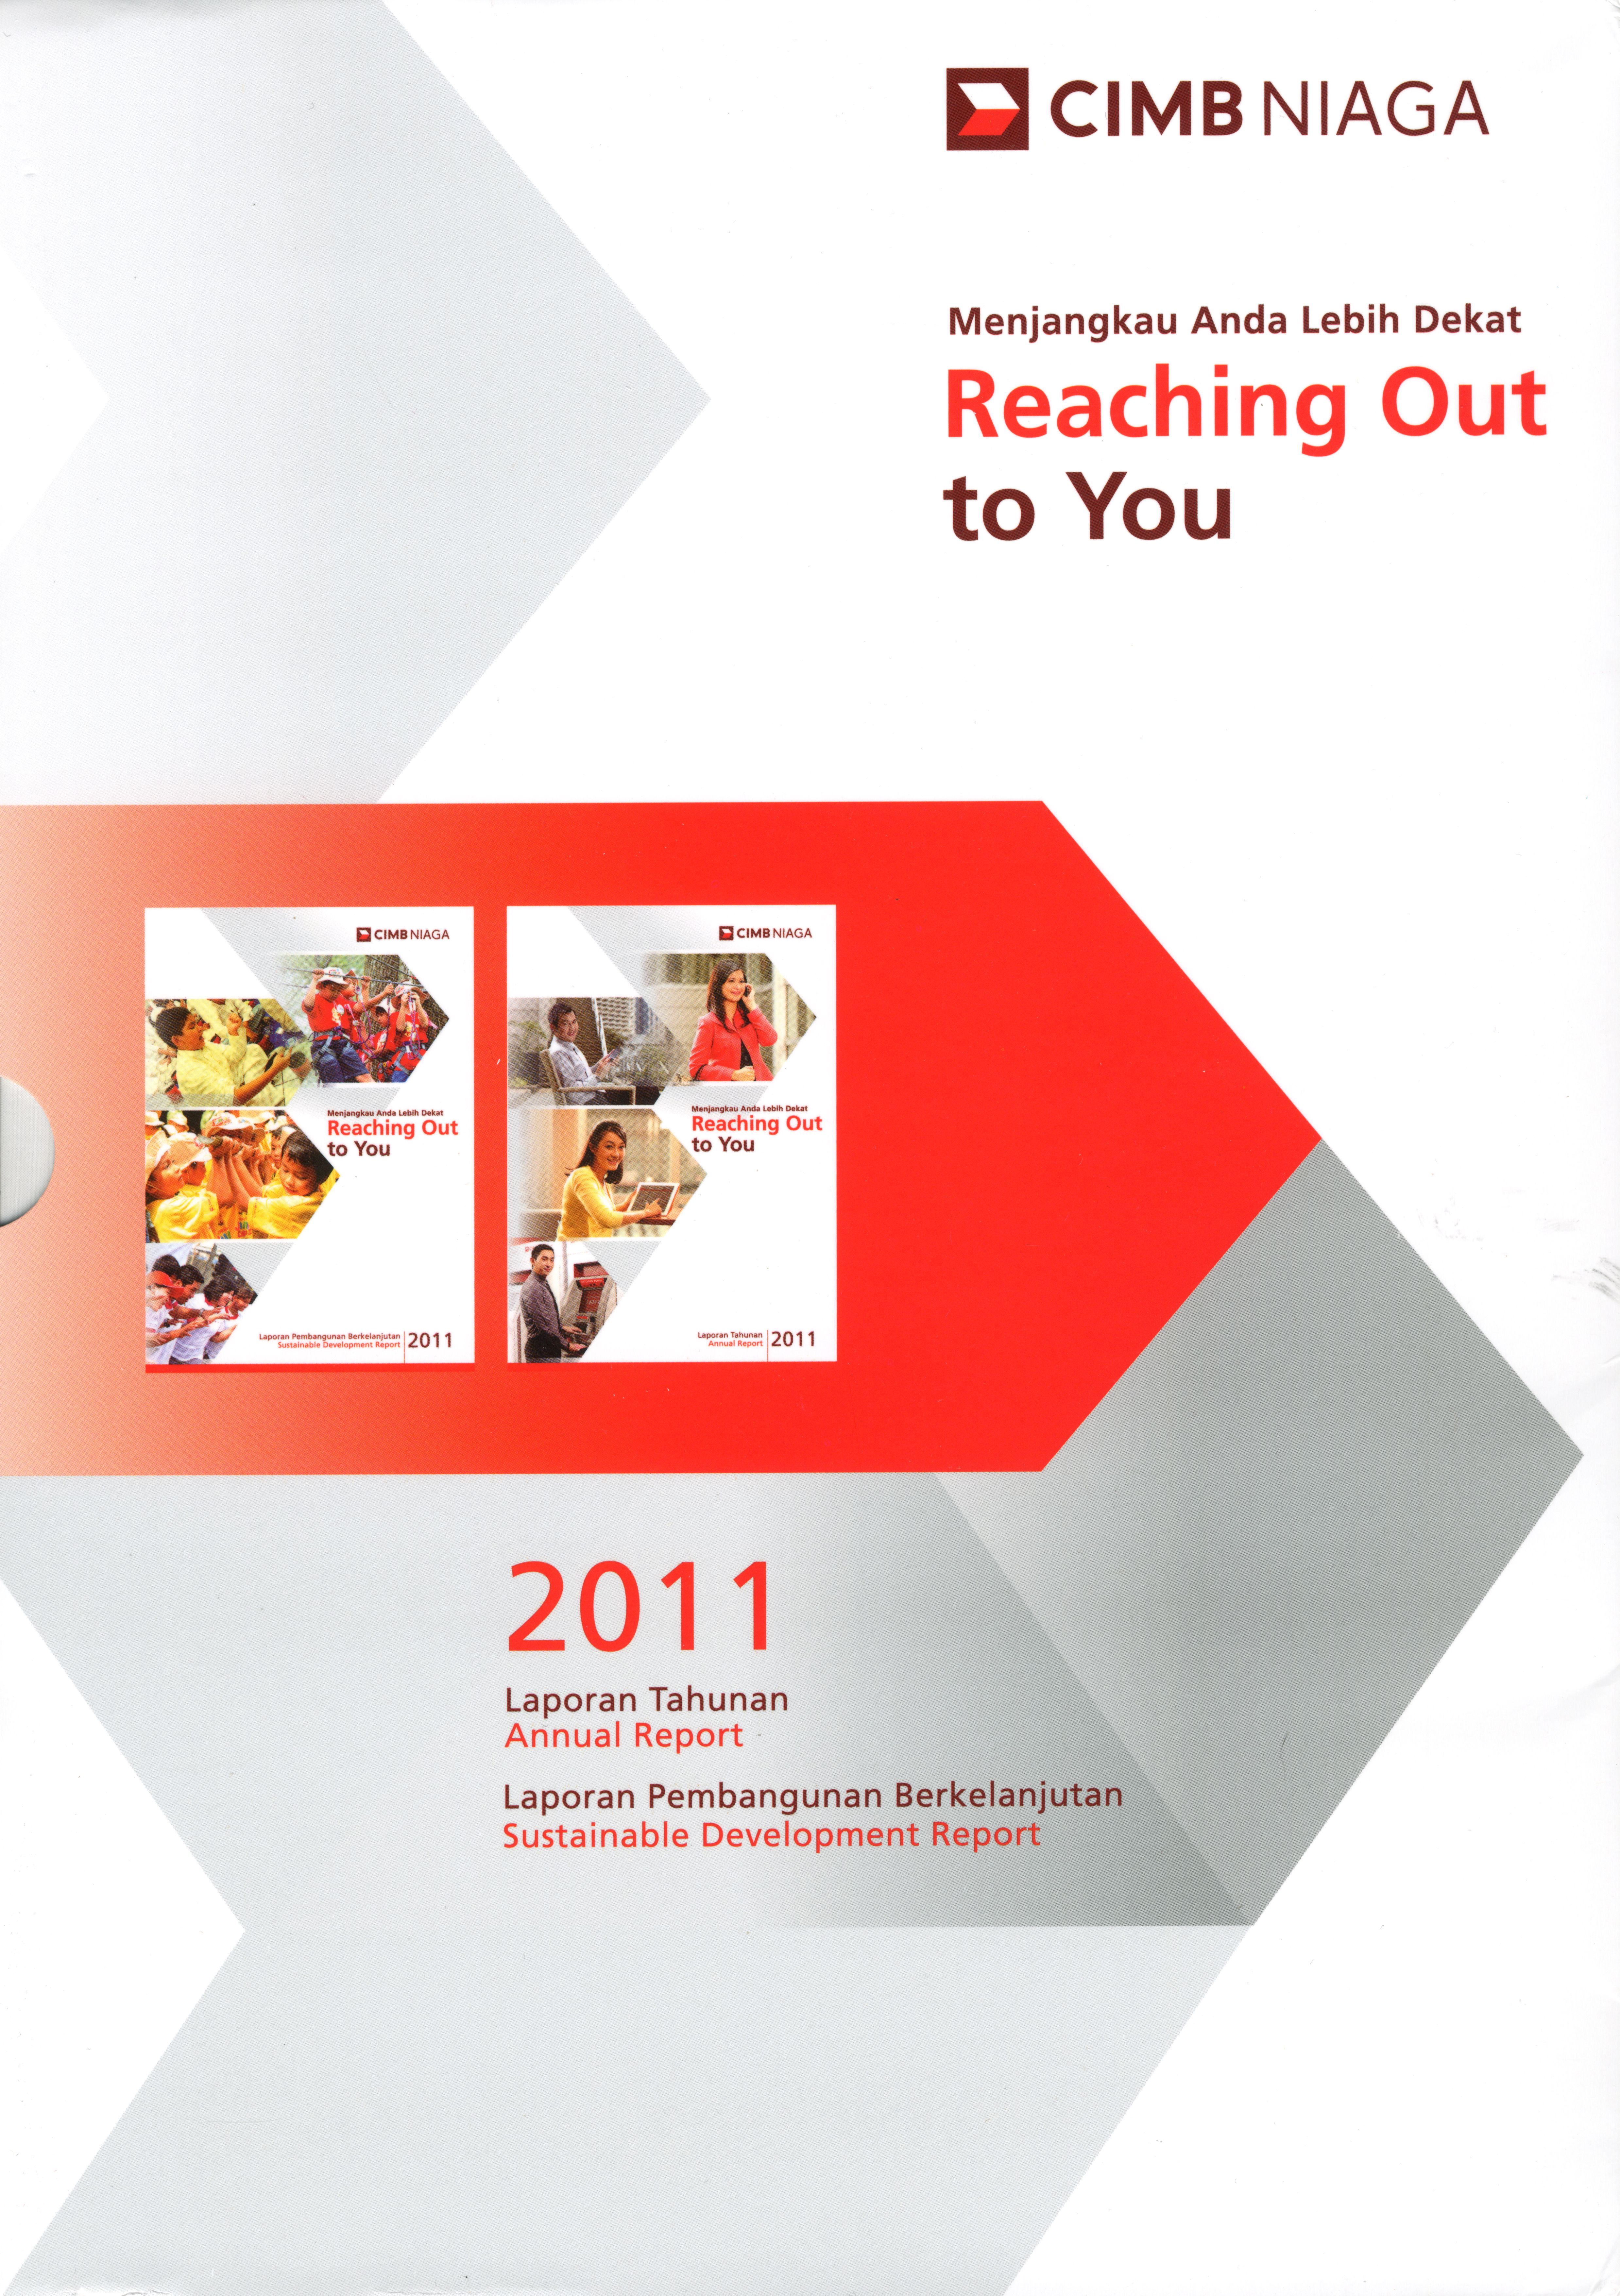 Lacp 2011 Vision Awards Annual Report Competition Pt